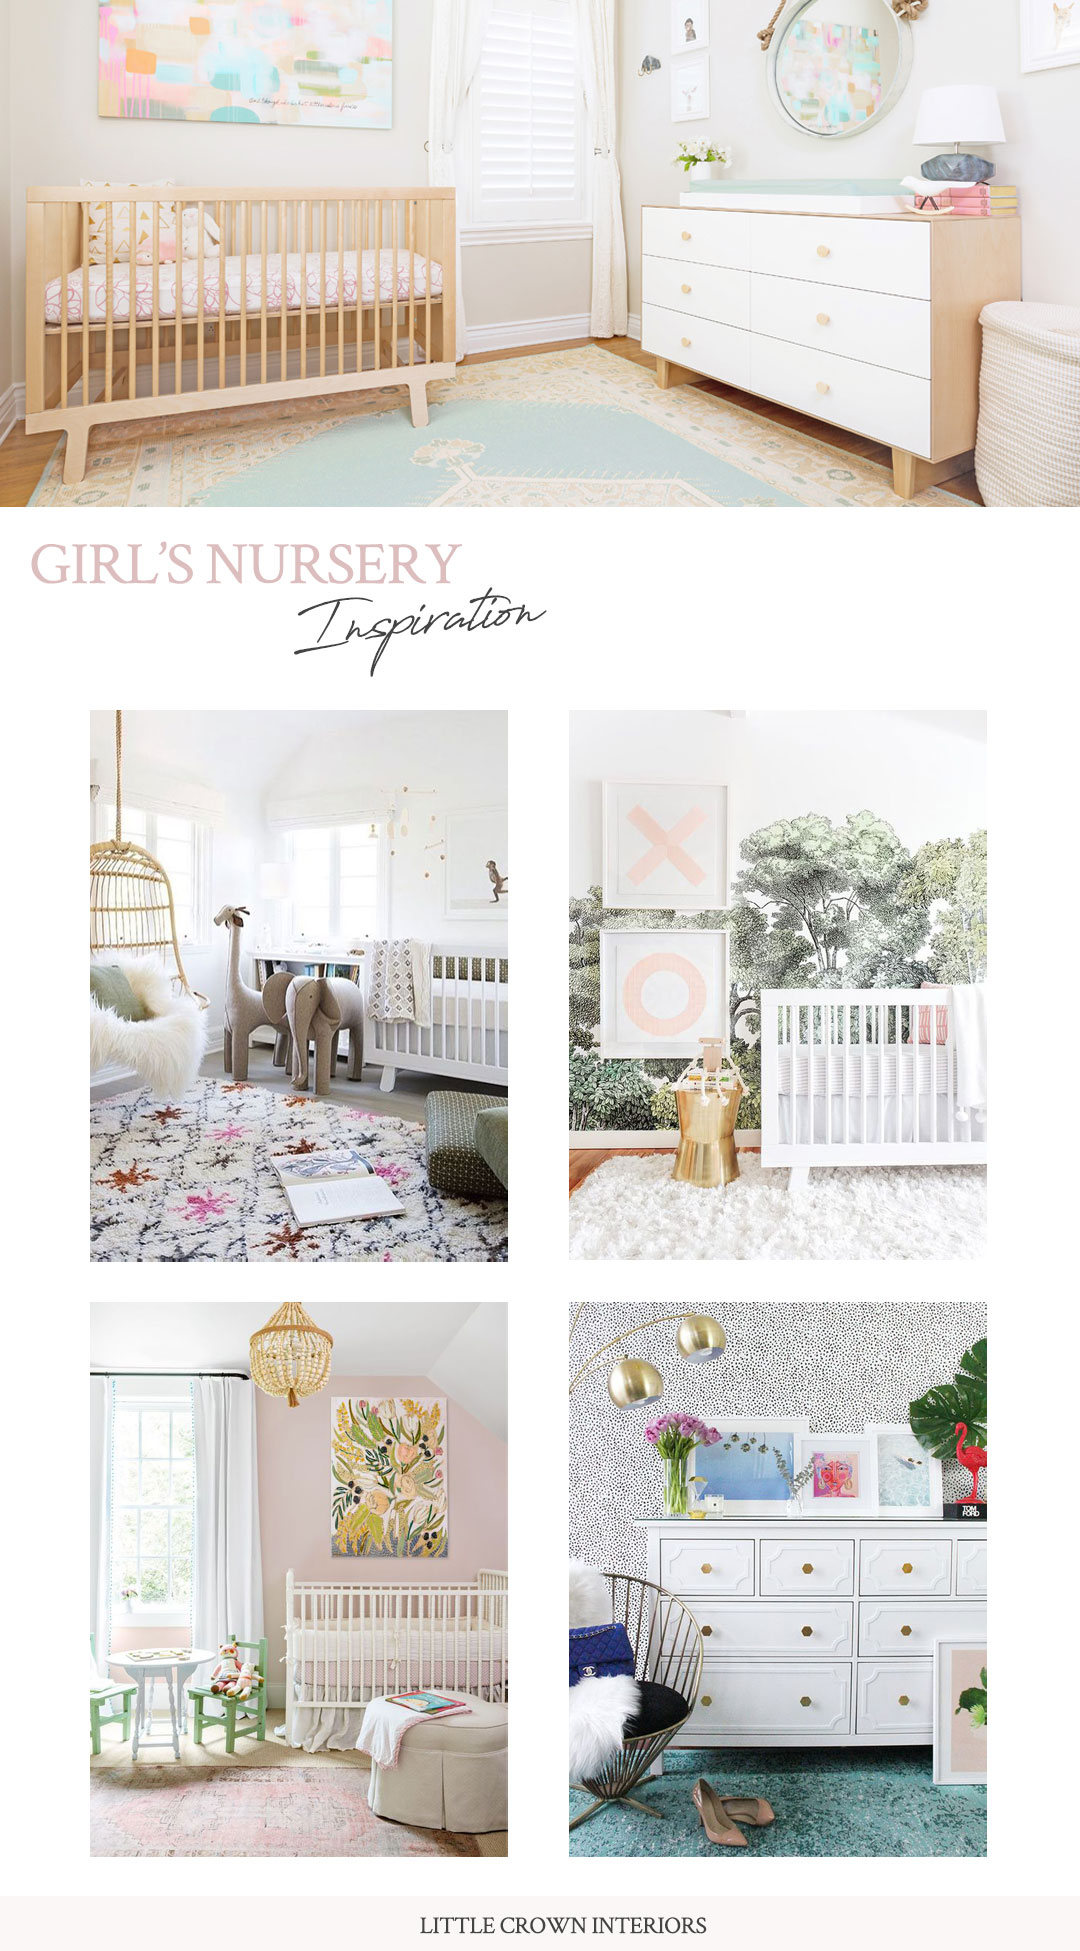 Girl's Nursery Inspiration | Little Crown Interiors